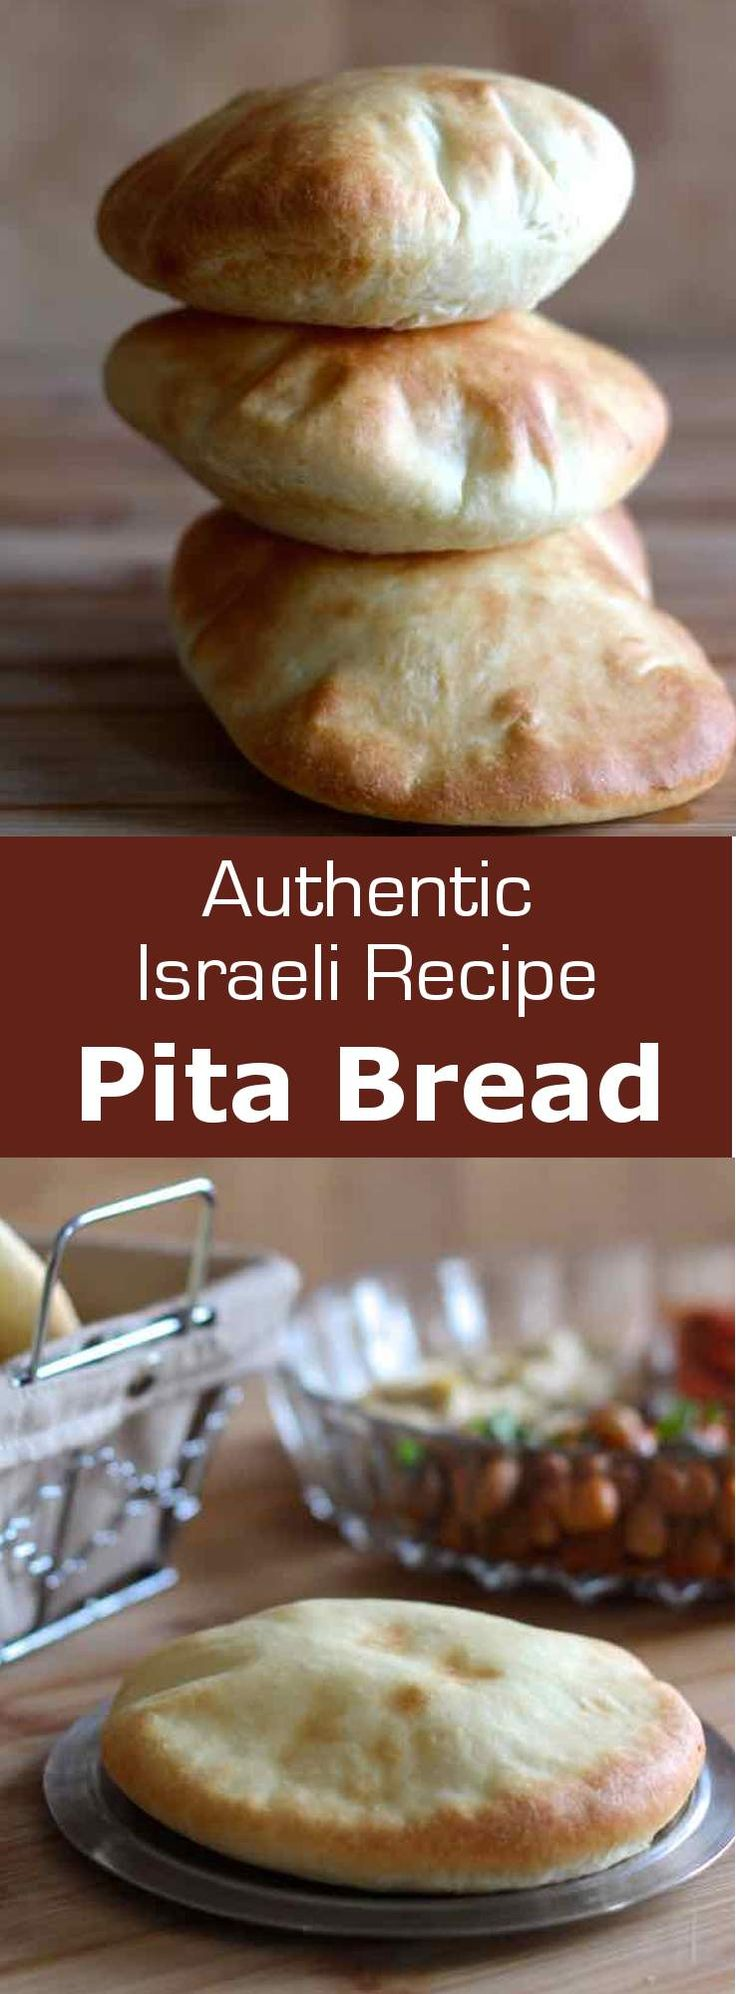 Pita bread is a soft and thin flat bread, consumed in the Near East and Middle East as well as in Southern